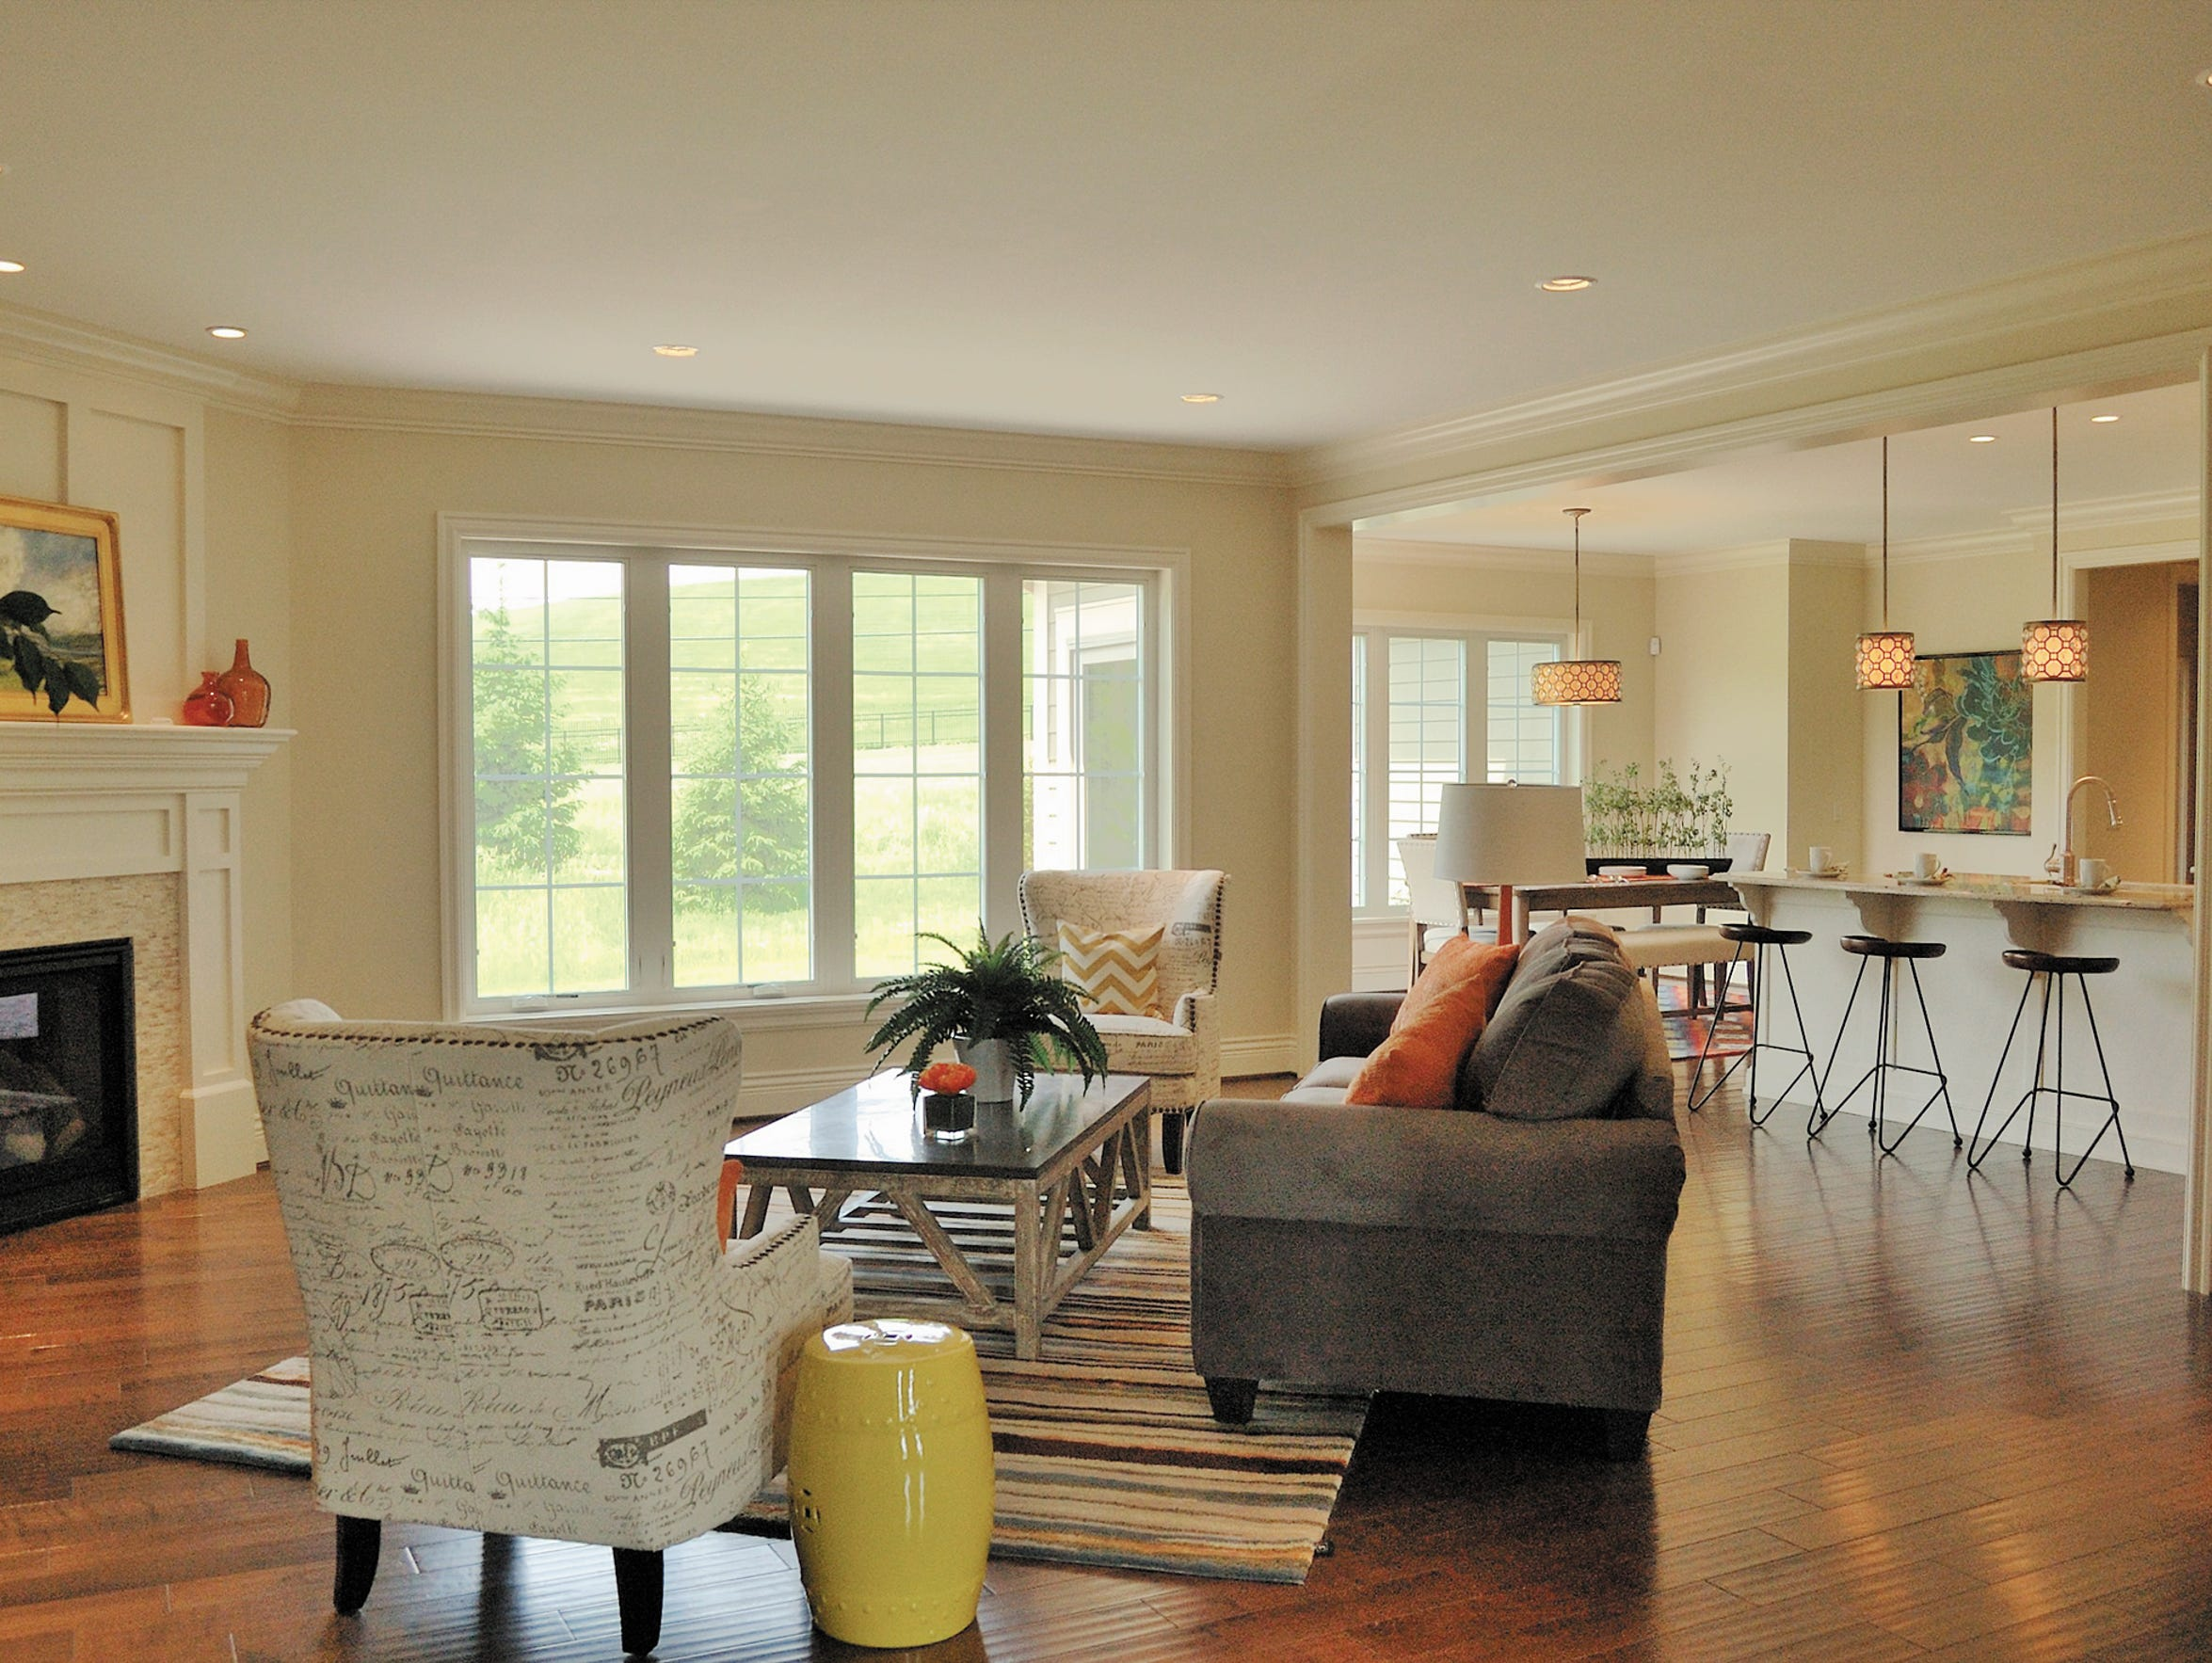 This Pittsford home, built by Ketmar and designed by